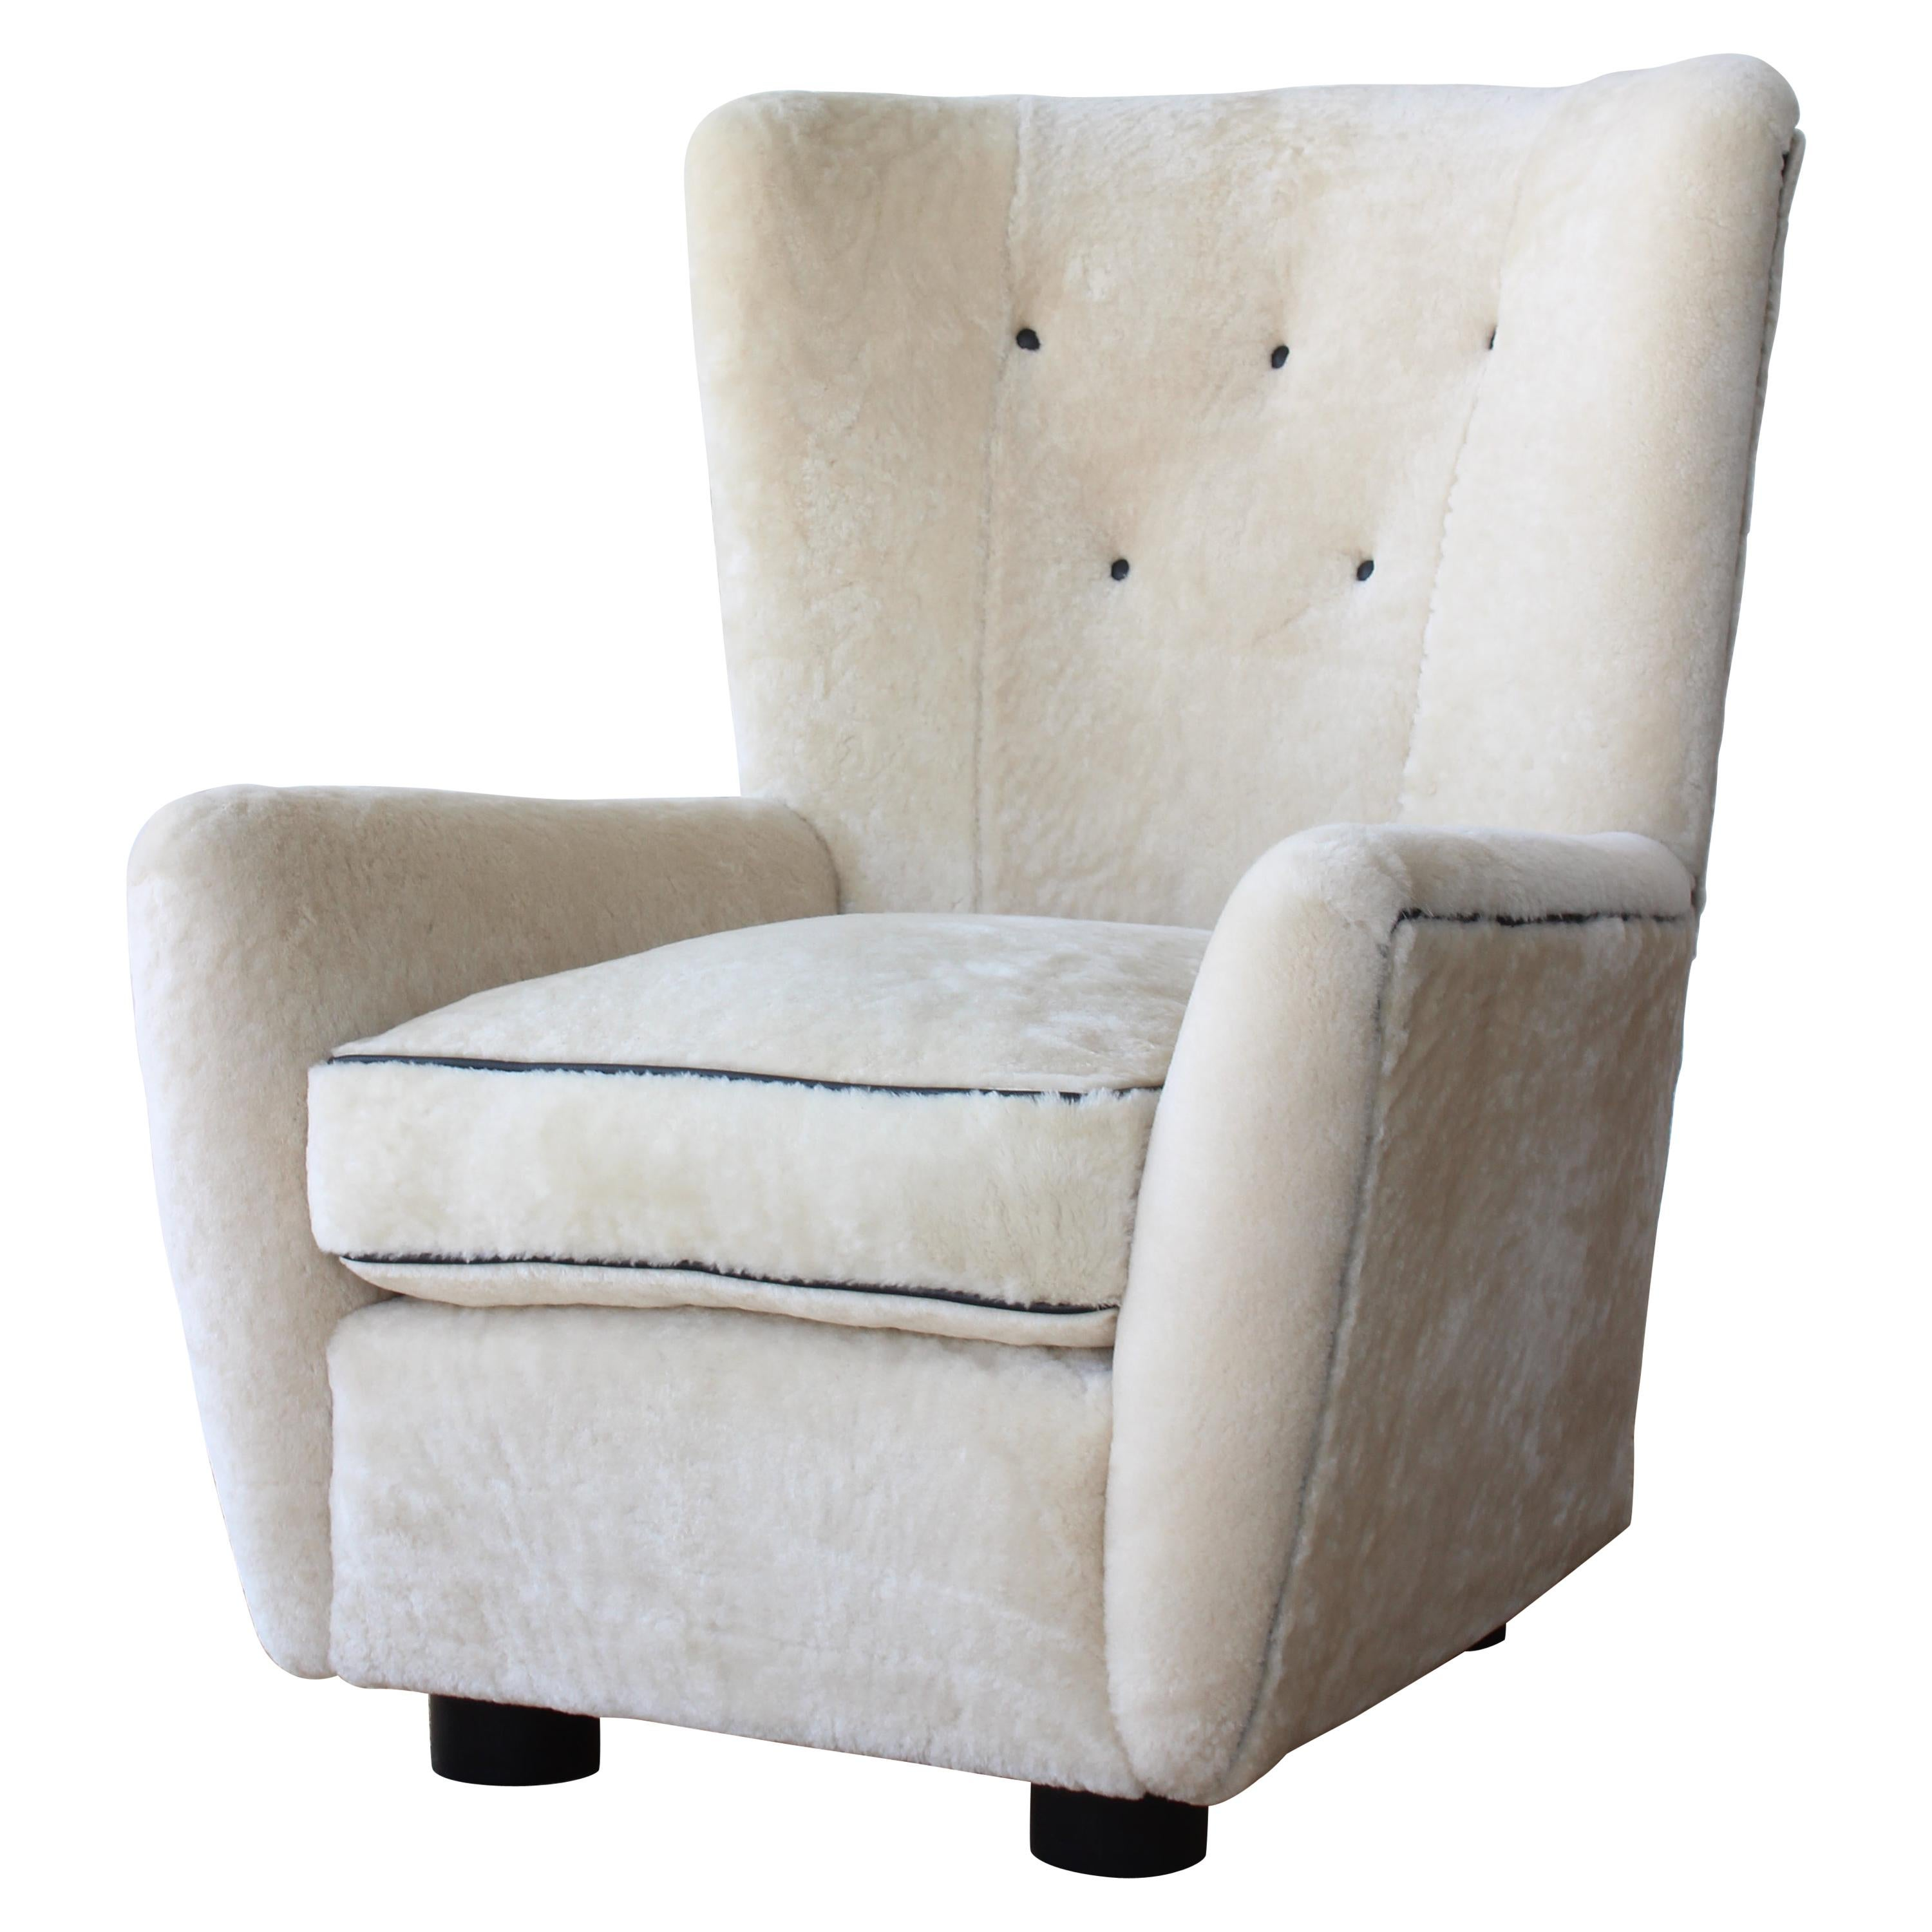 Mid Century Lounge Chair in Sheepskin, France, 1950s